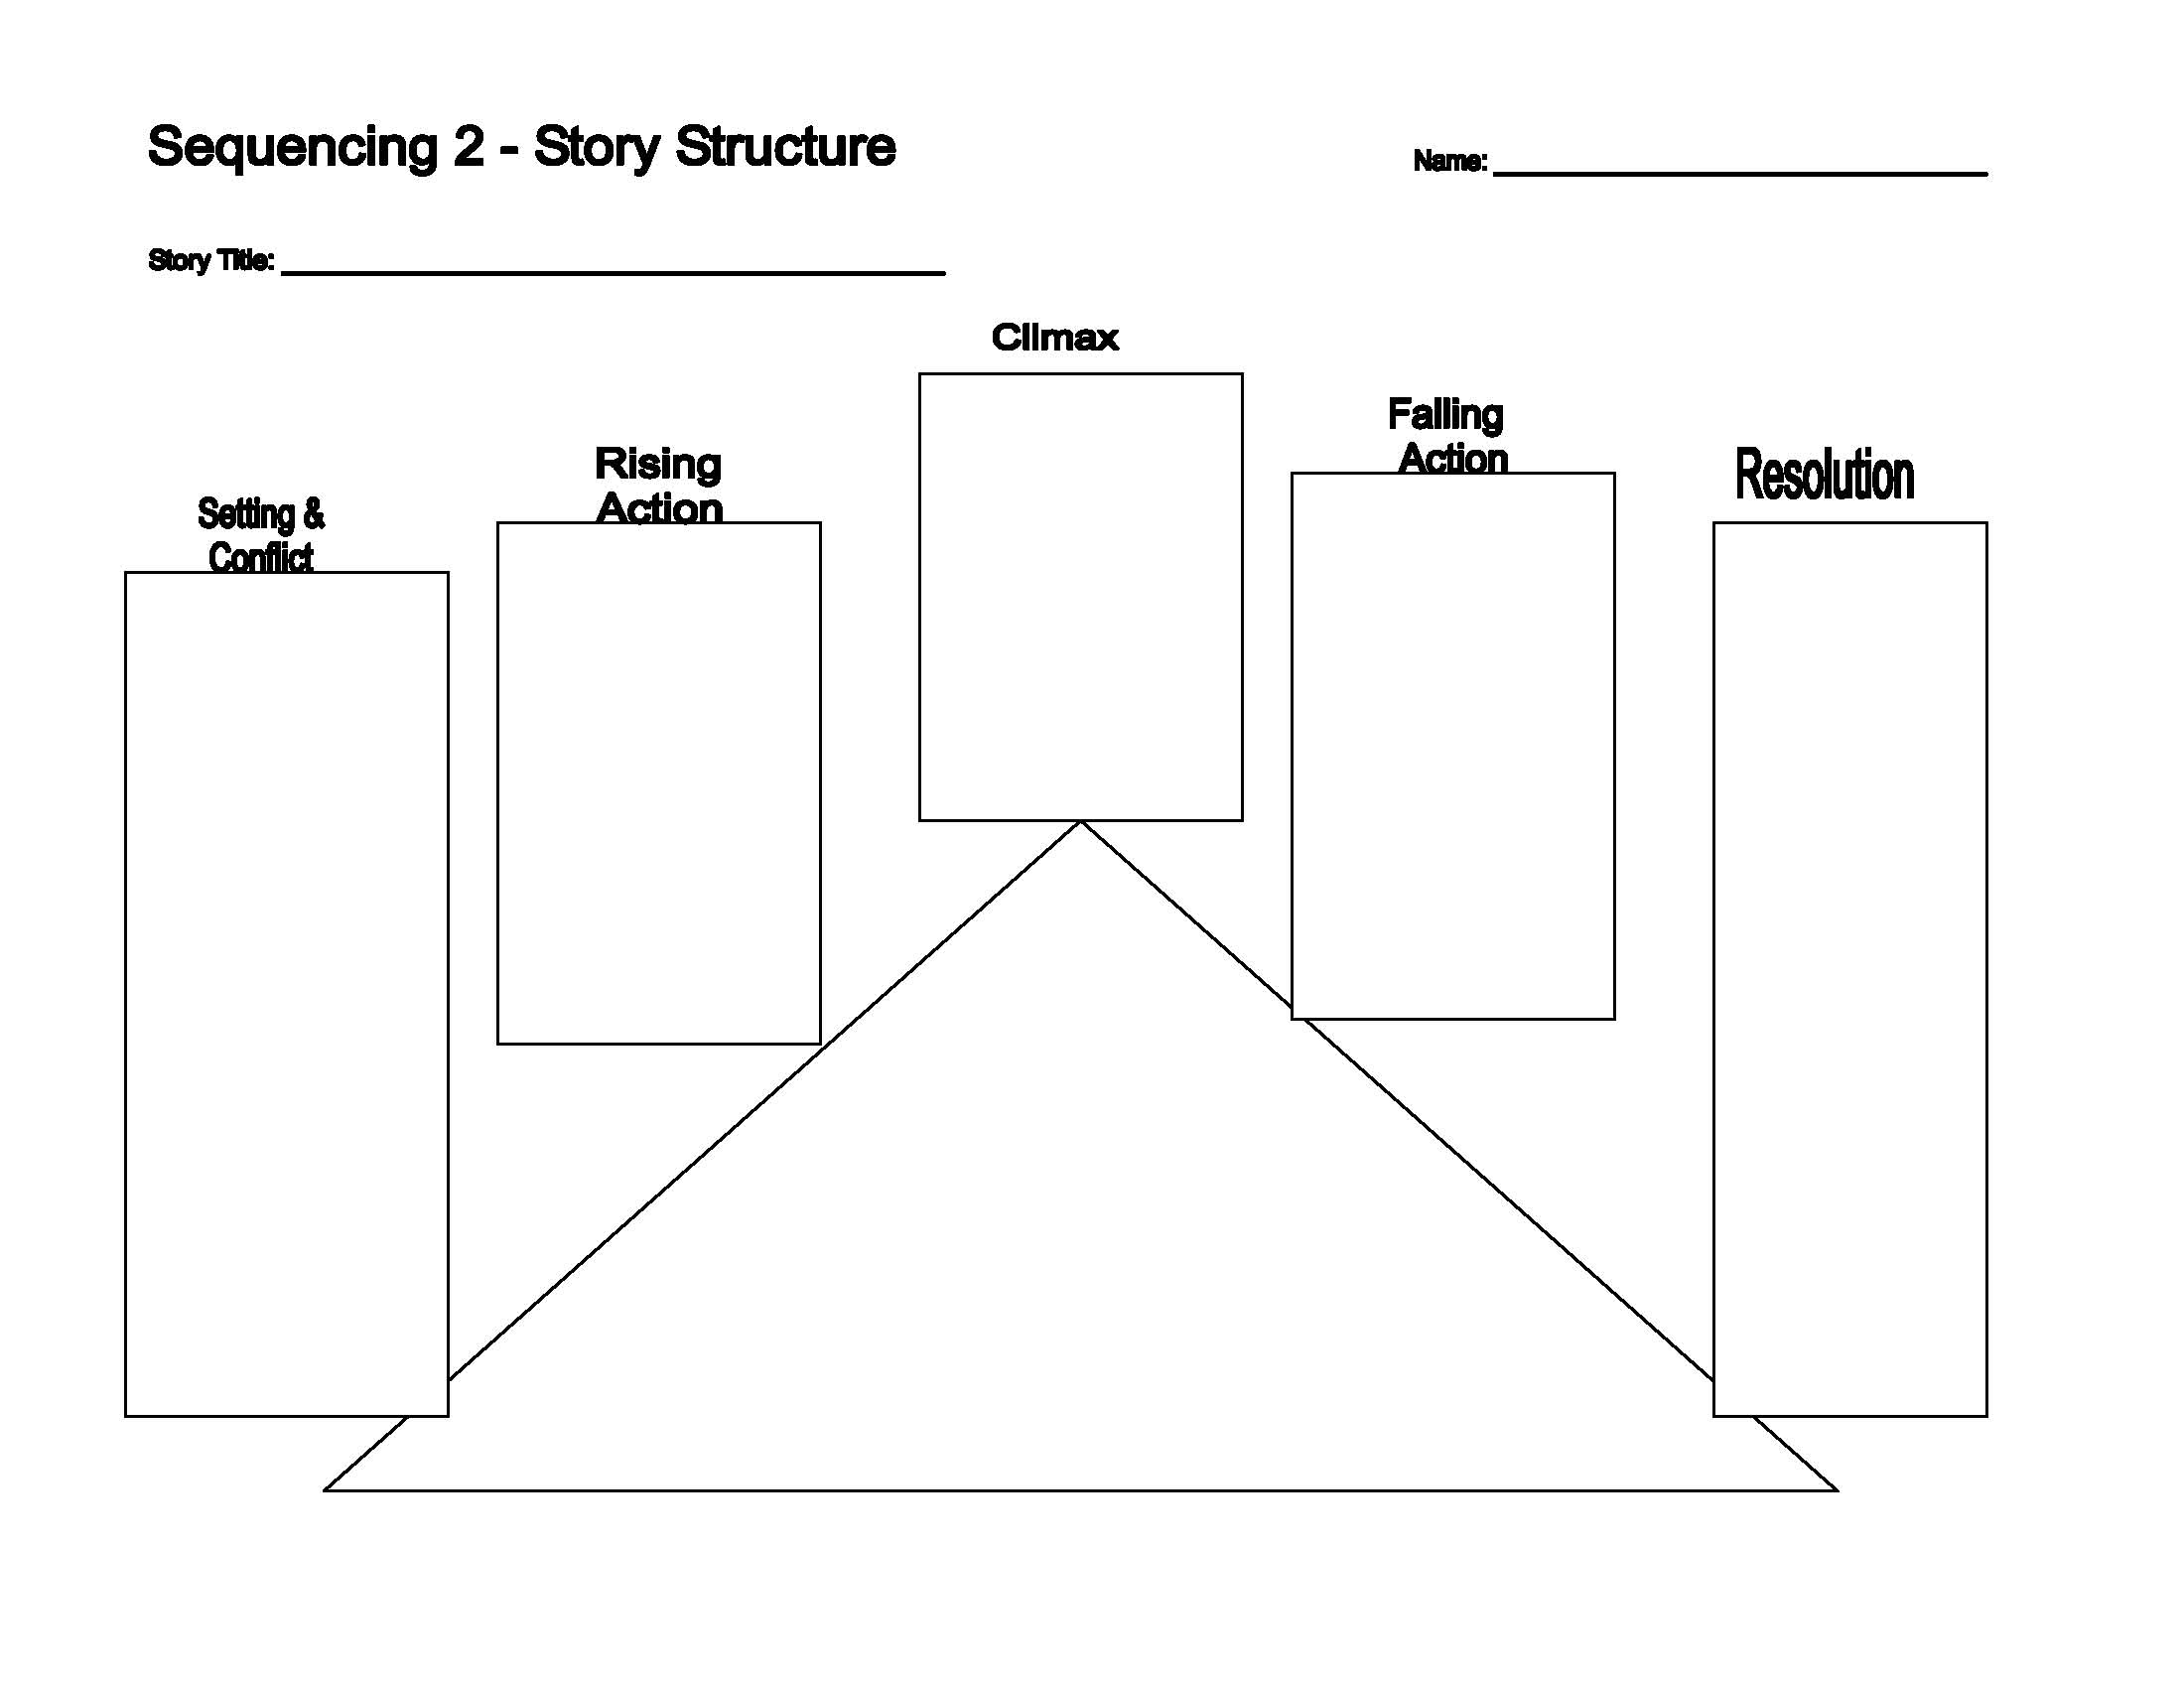 Story Structure Graphic Organizer 2